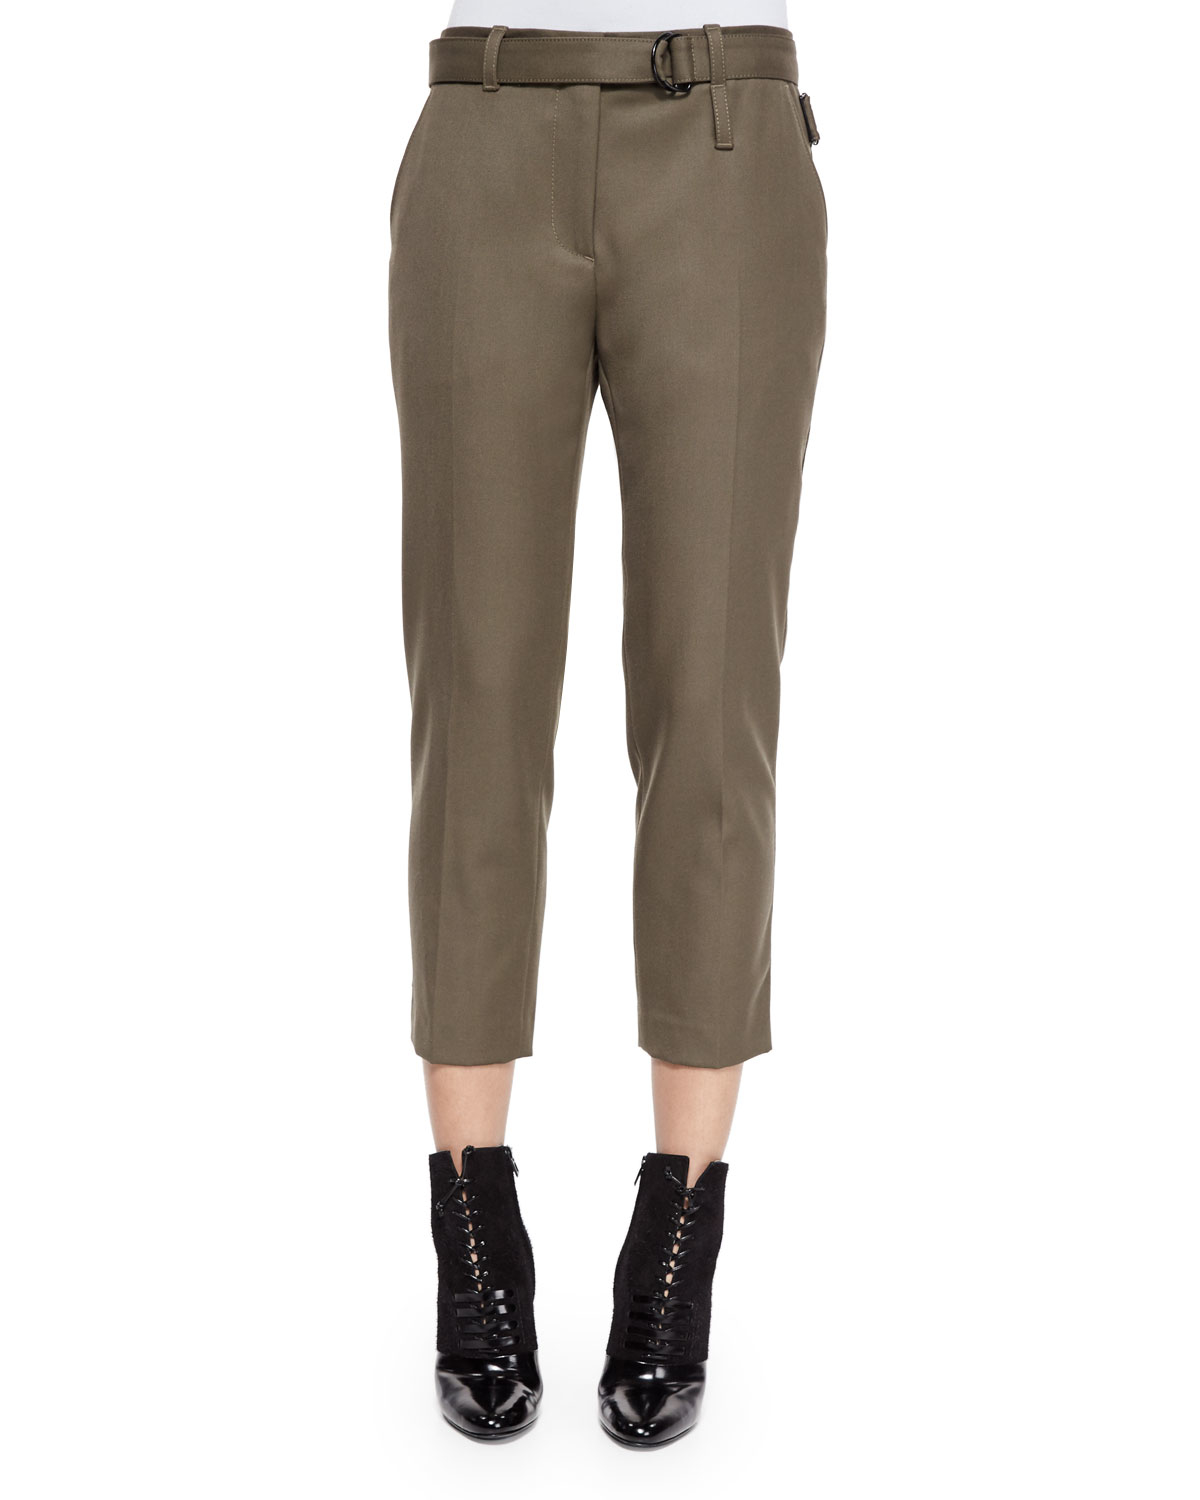 3.1 phillip lim Cropped Wool Utility Pants in Brown | Lyst